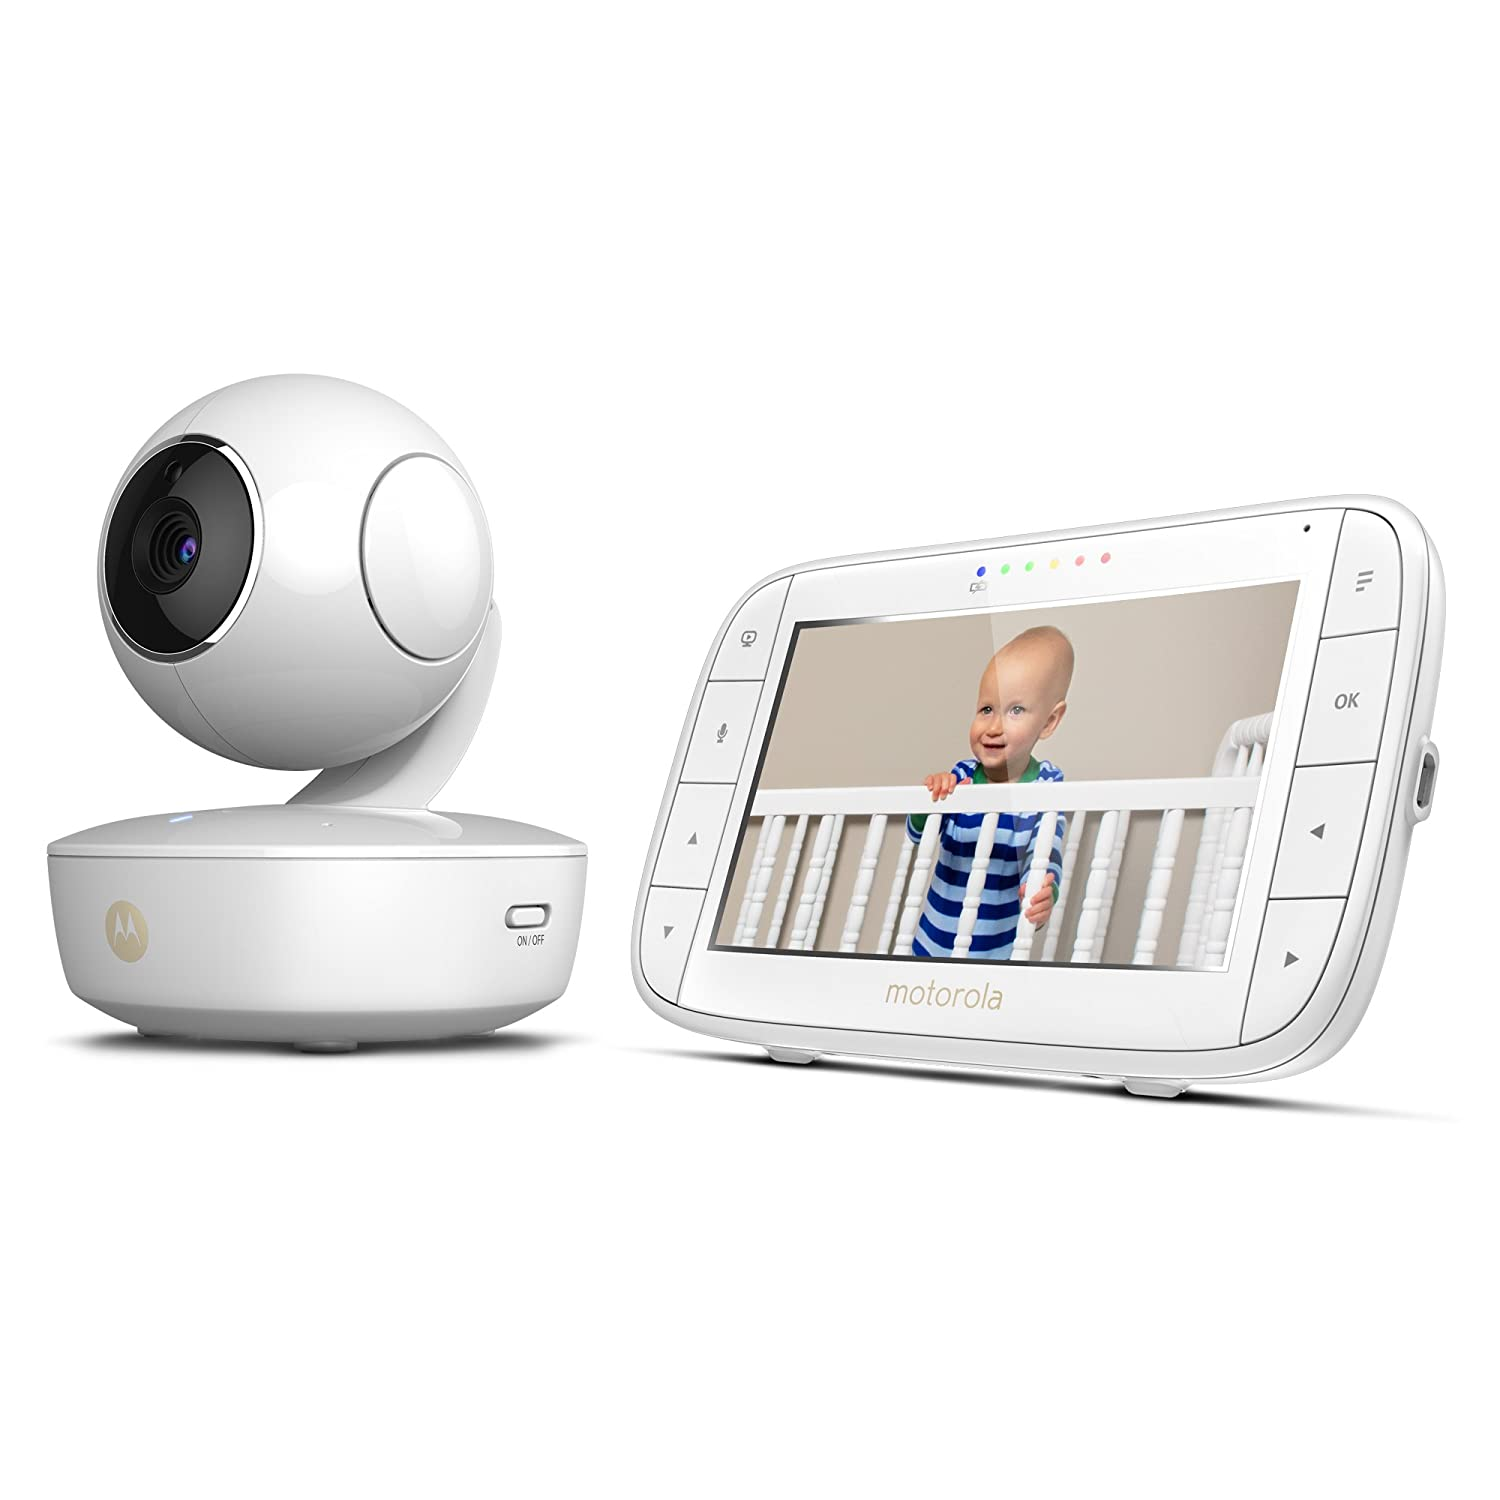 motorola 5 portable video baby monitor mbp36xl. amazon.com : motorola mbp36xl portable video baby monitor, 5-inch color screen portable, rechargeable camera with remote pan, tilt, and zoom, two-way audio, 5 monitor mbp36xl o